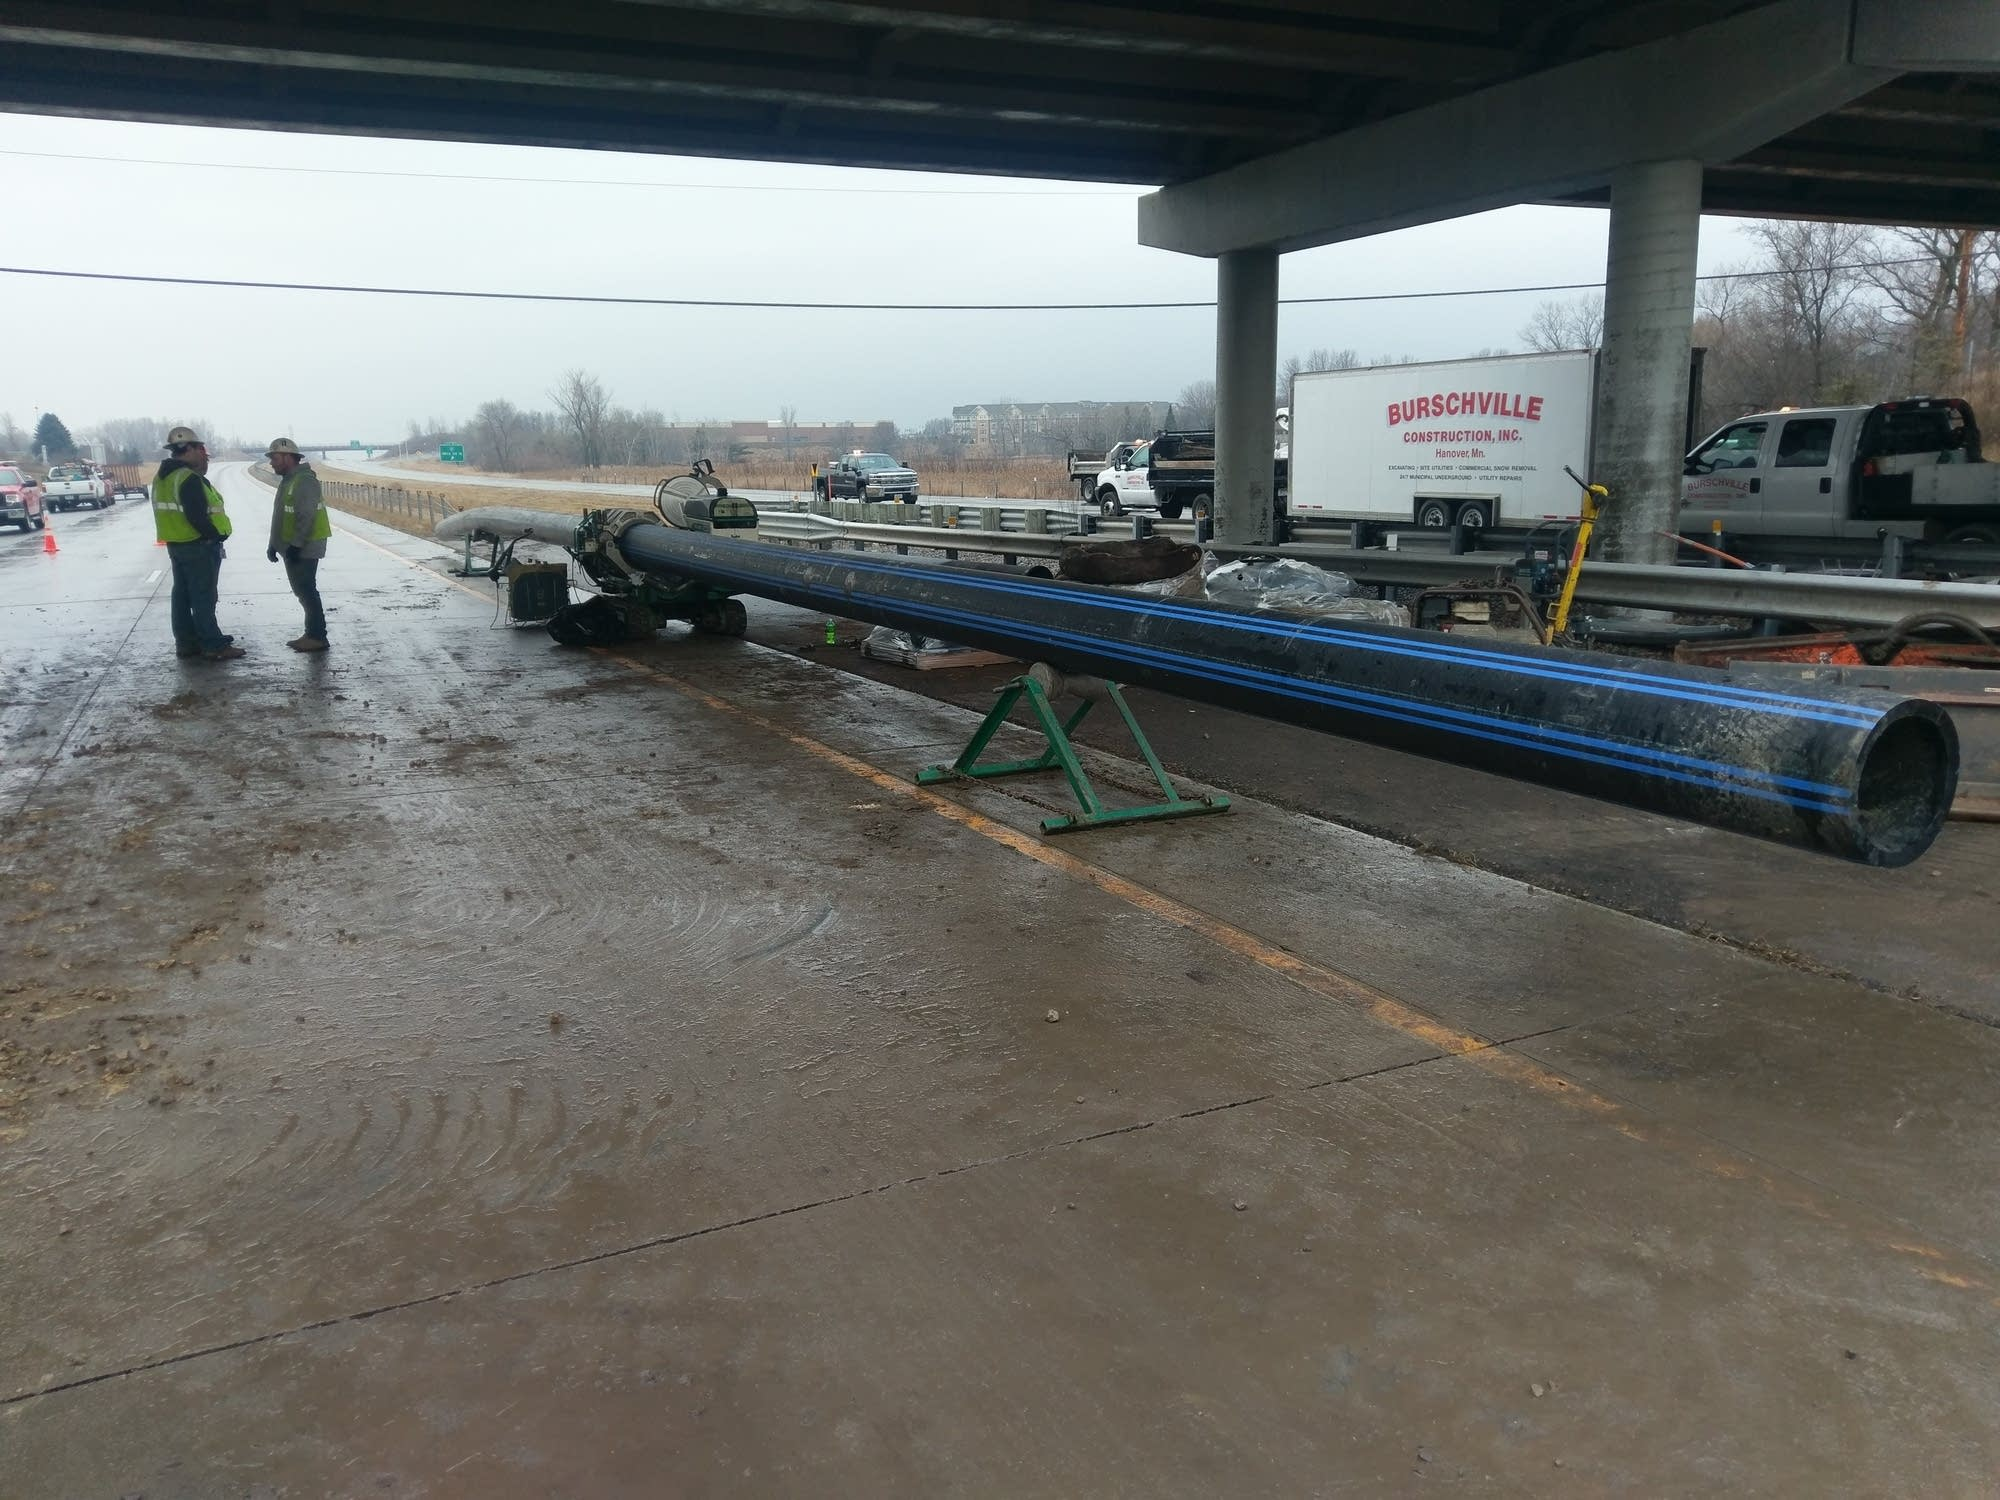 A new water main was being prepared for installation under I-694.